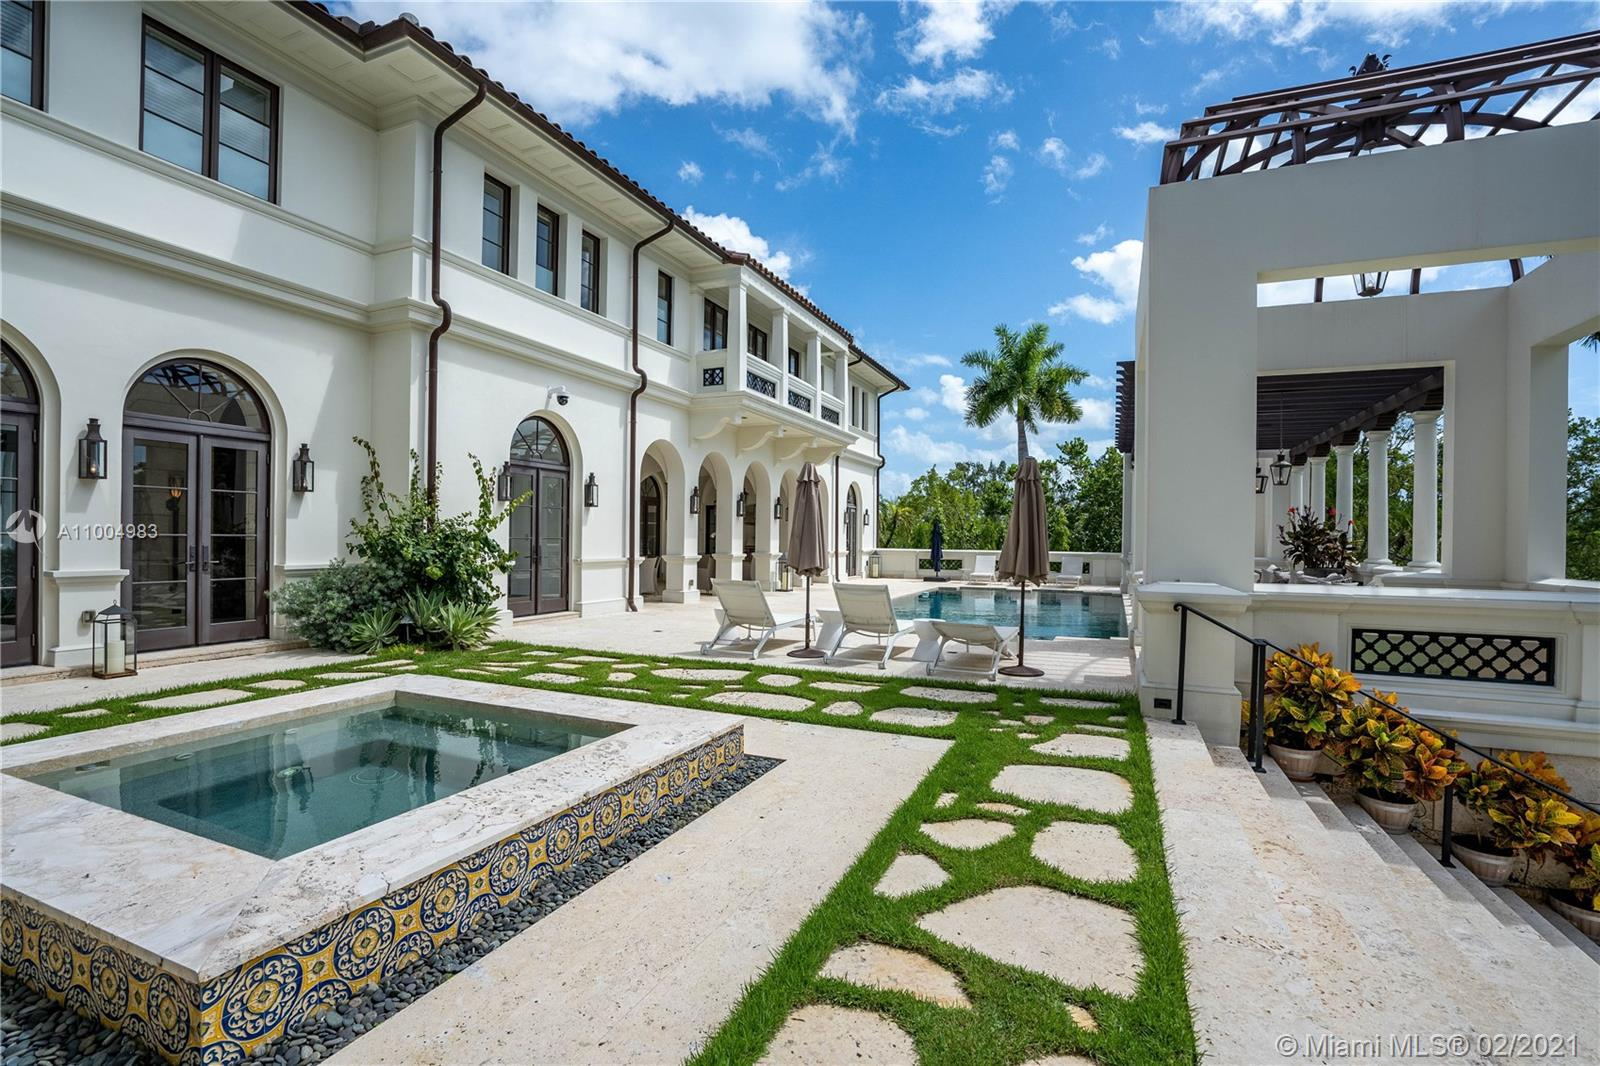 300 Costanera rd- coral-gables-fl-33143-a11004983-Pic01